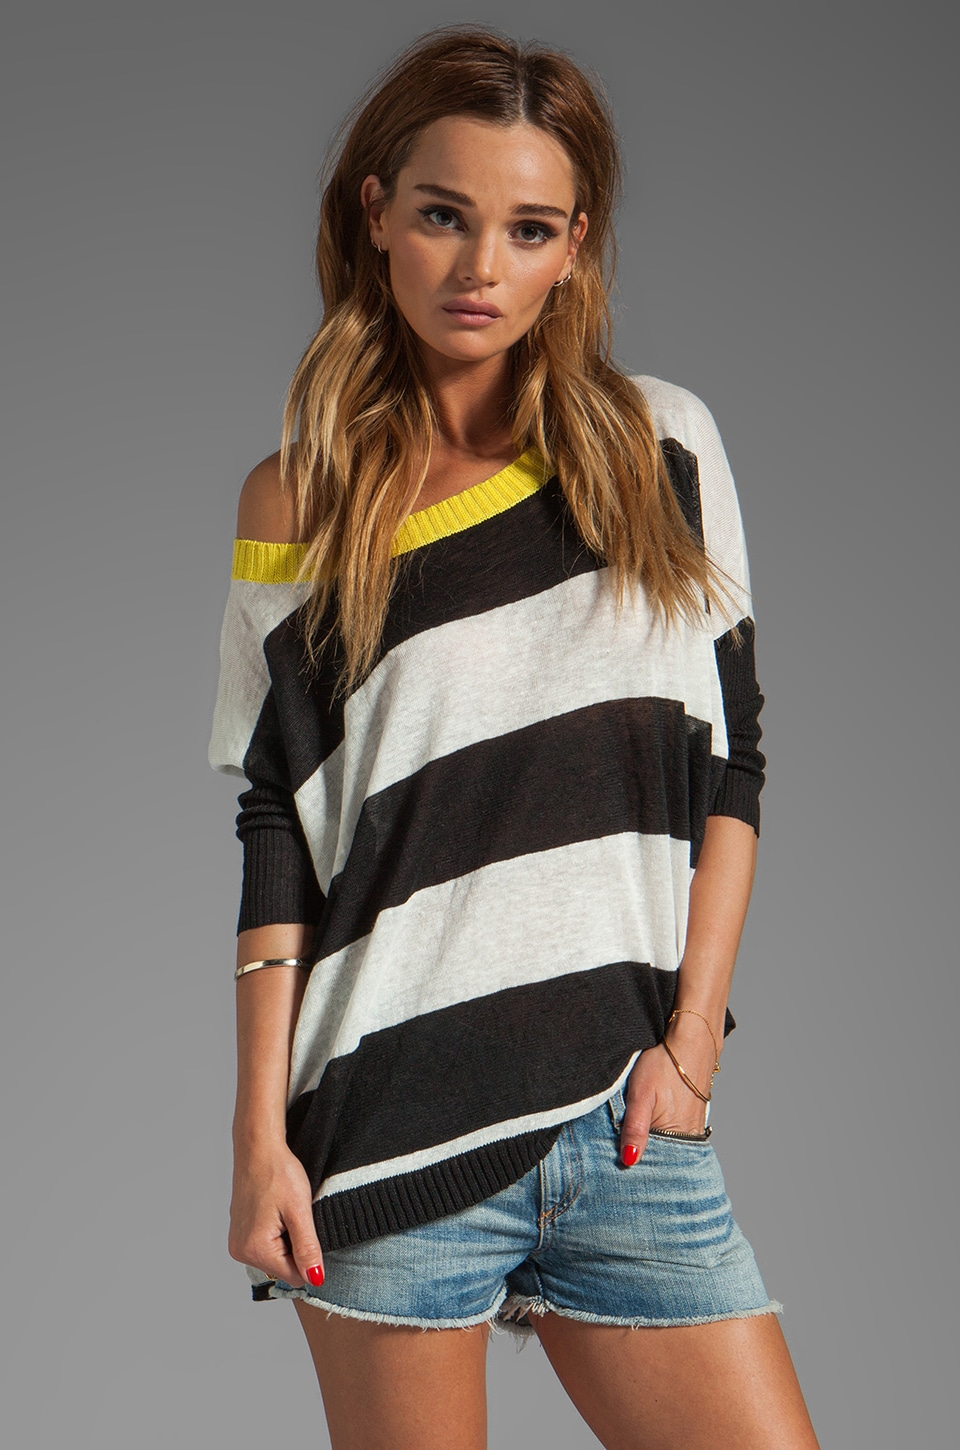 Central Park West Chapel Hill Striped Top in Black/Ivory/Citron